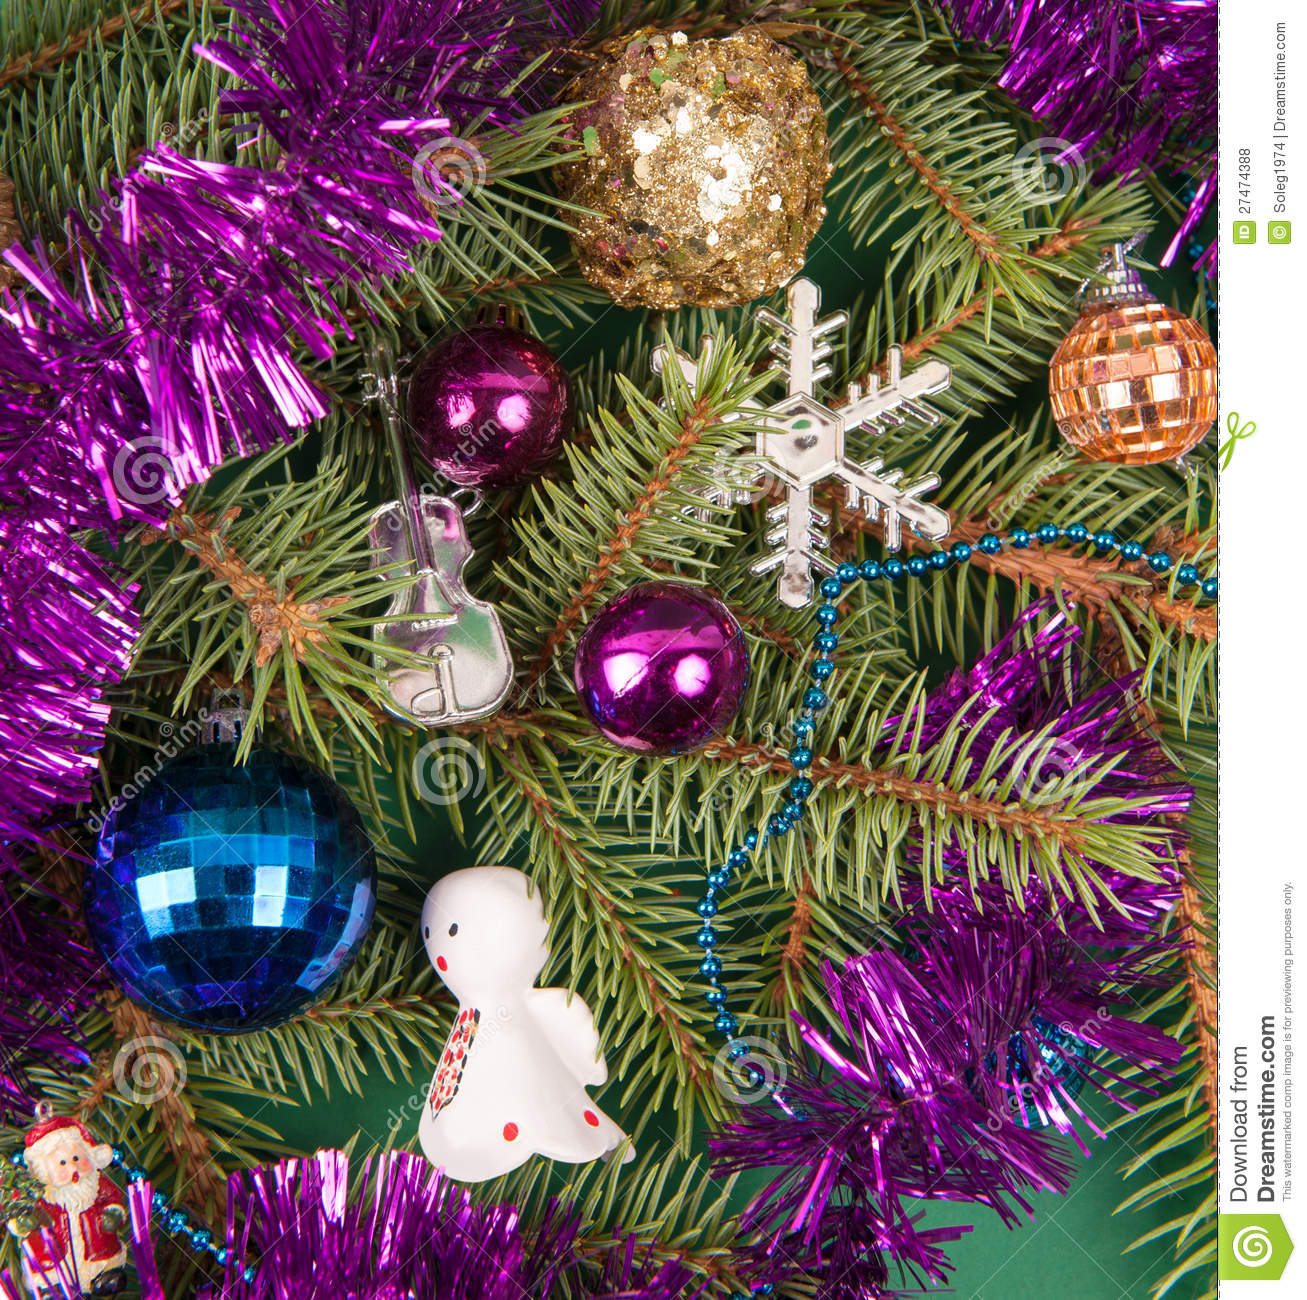 Christmas tree decoration with angel royalty free stock photos image 27474388 for Angel of the north christmas decoration